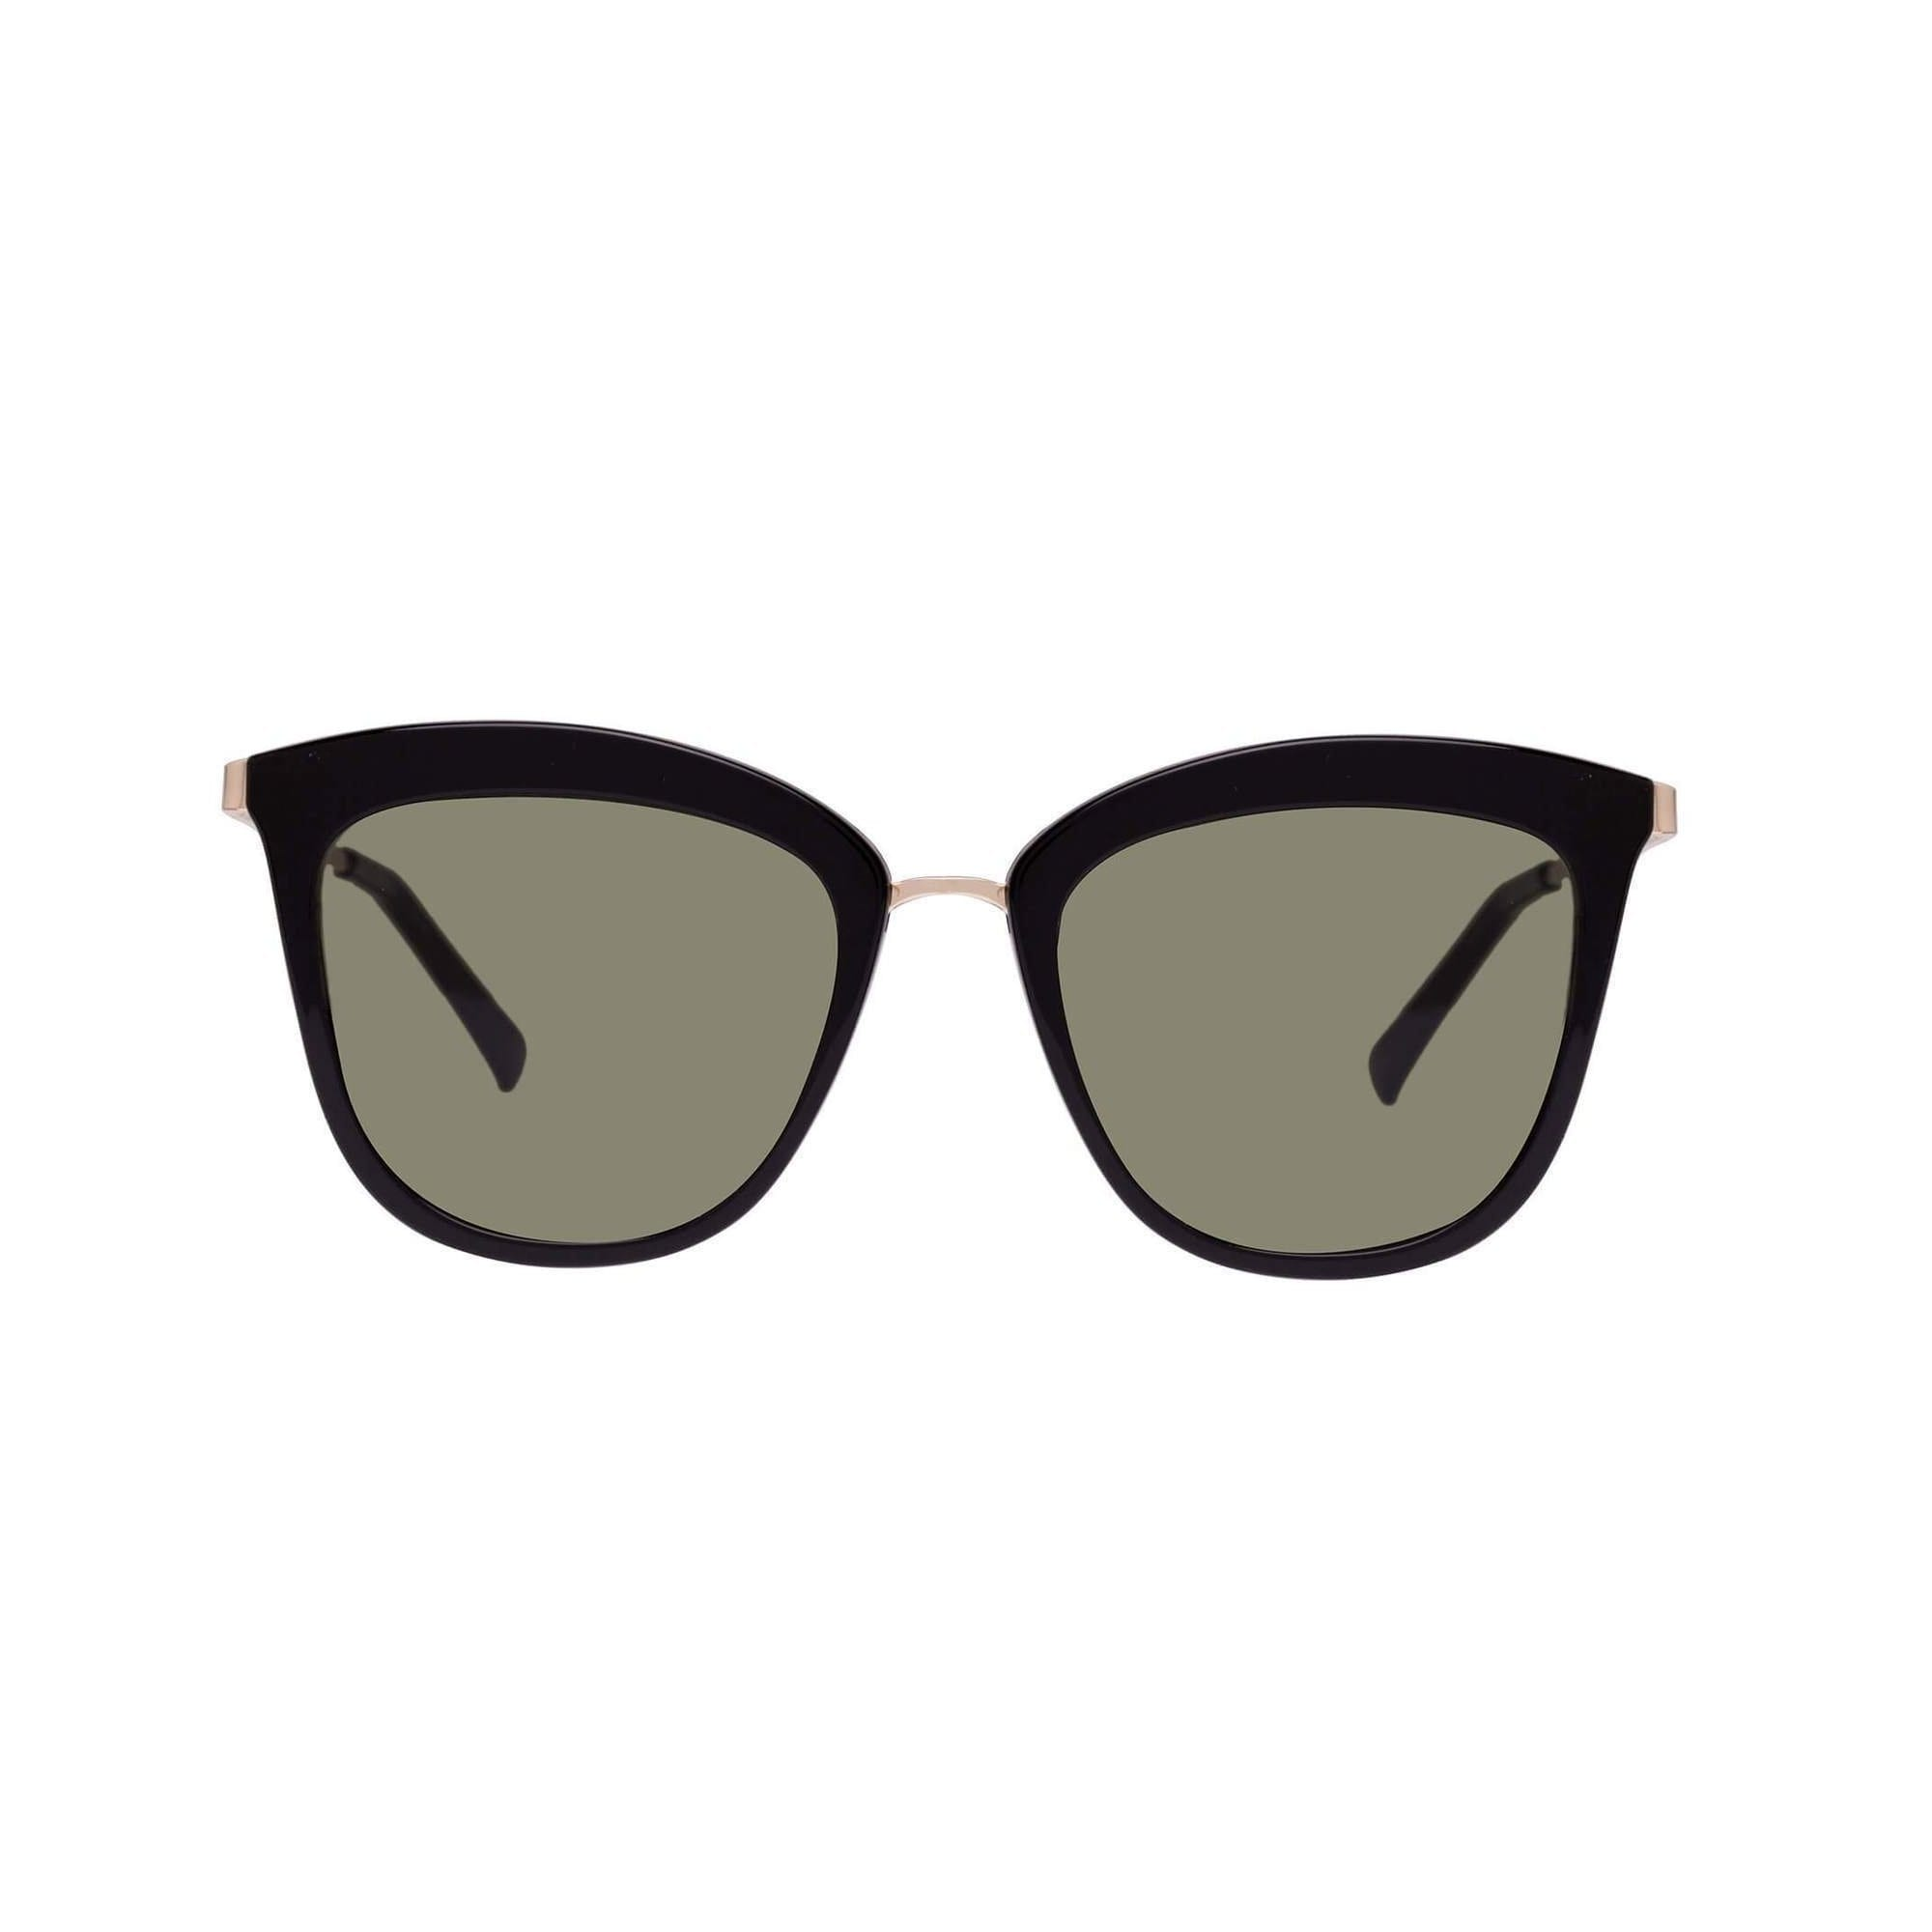 Caliente Sunglasses / Neighborhood Goods